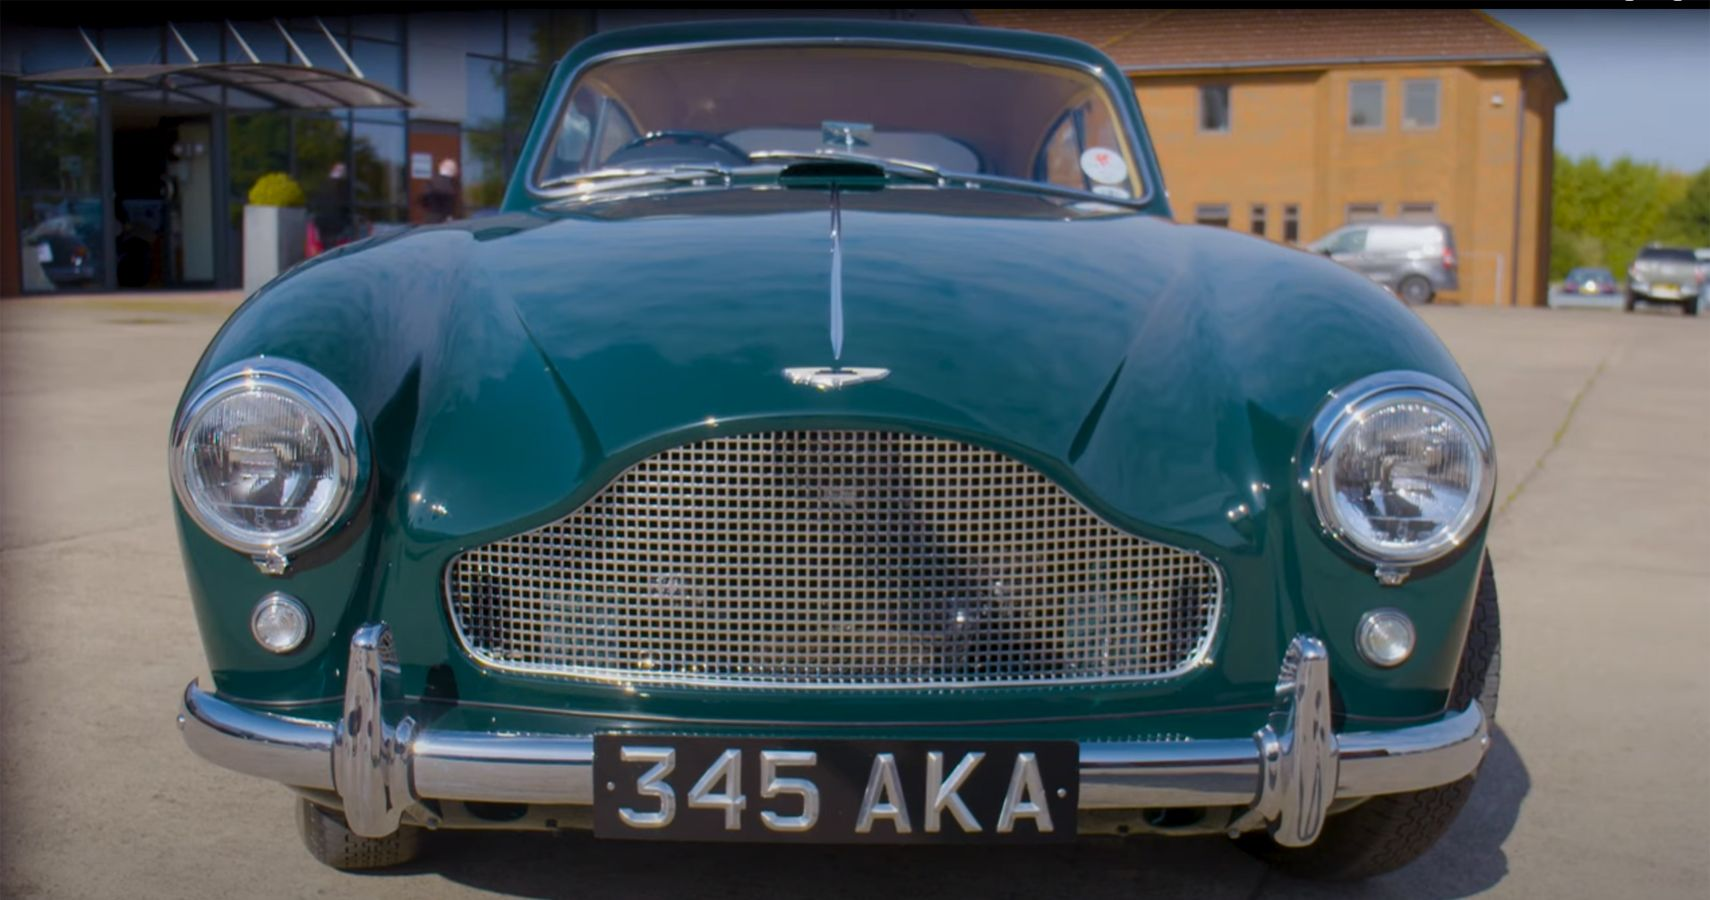 Watch An Abandoned Aston Martin Restored To Its Original Greatness